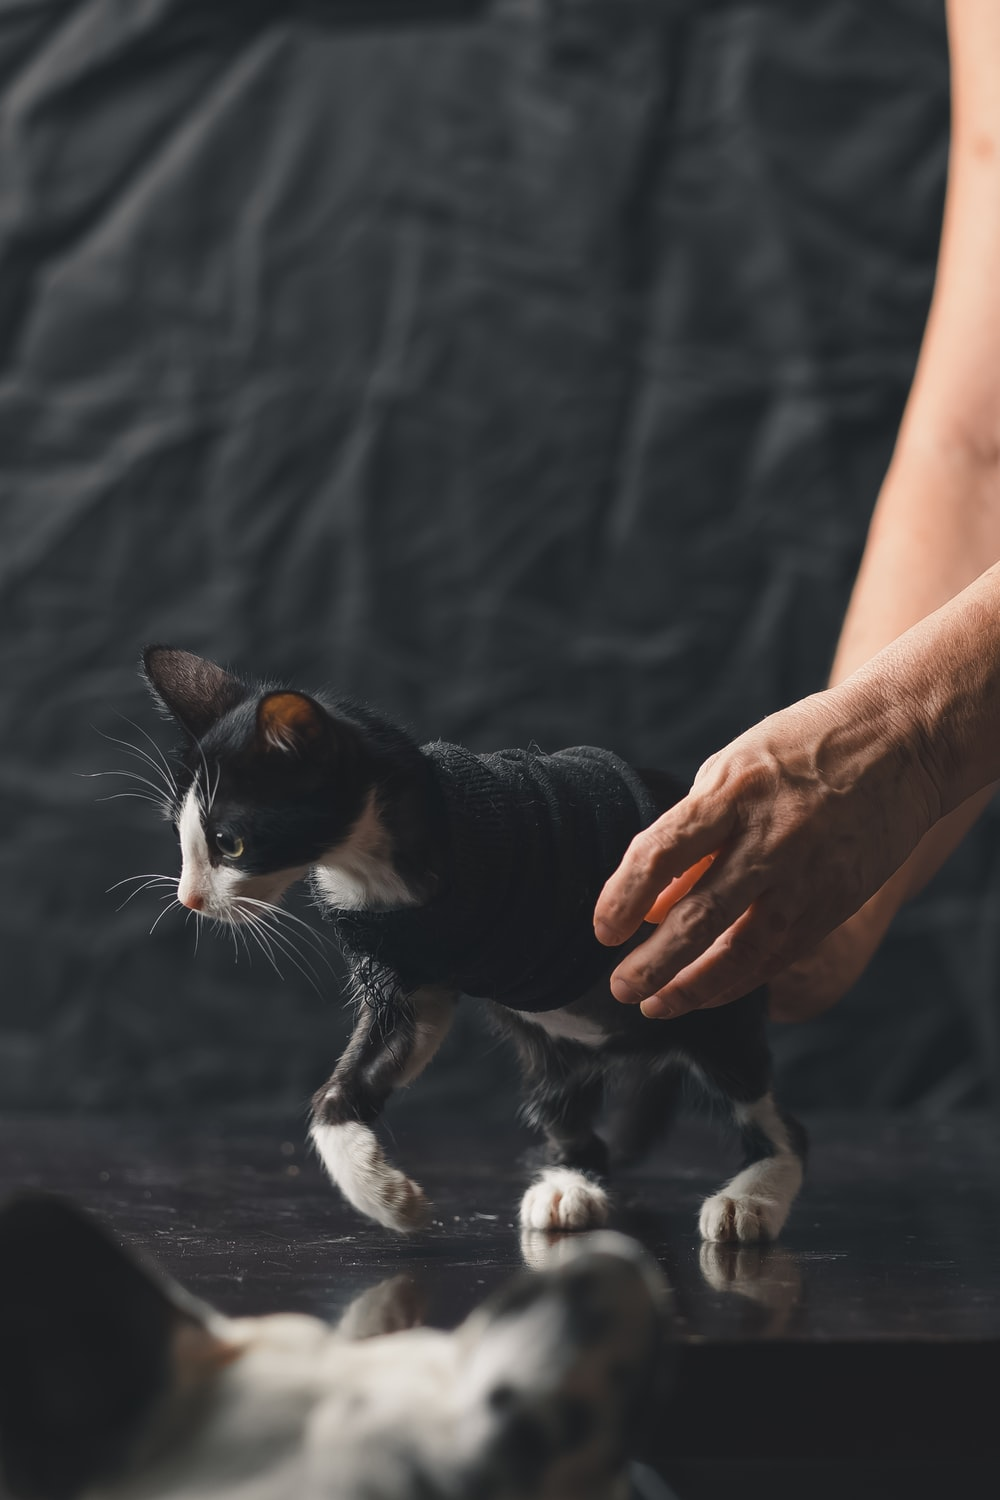 person holding black and white cat